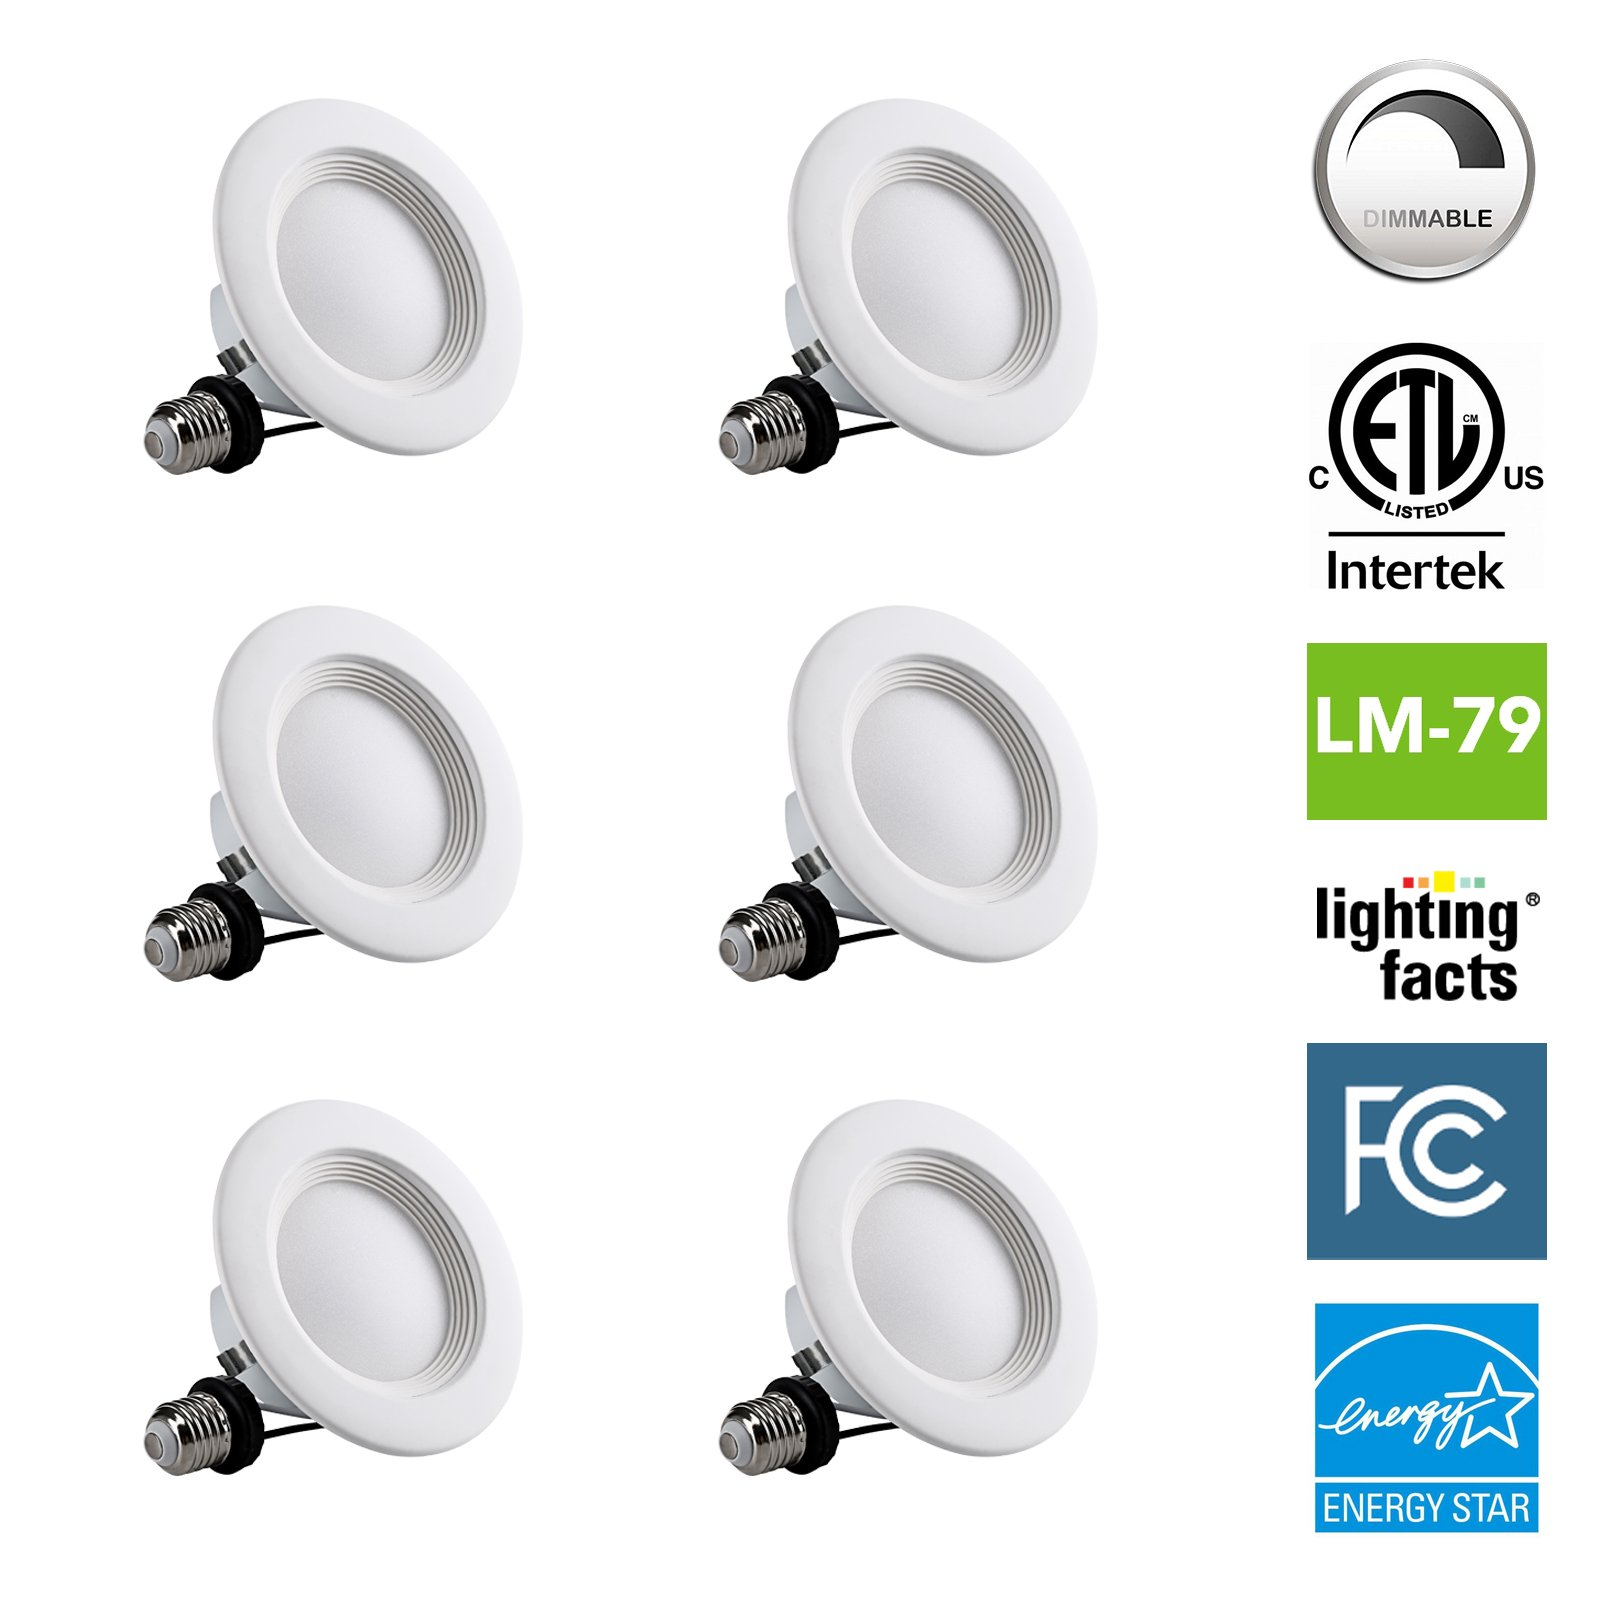 NASUN 4 Inch Dimmable LED Downlight, ENERGY STAR, ETL, FCC, 9W, CRI80+, Recessed Retrofit Downlight Lighting Fixture - (Pack of 6), 5 Year Warranty